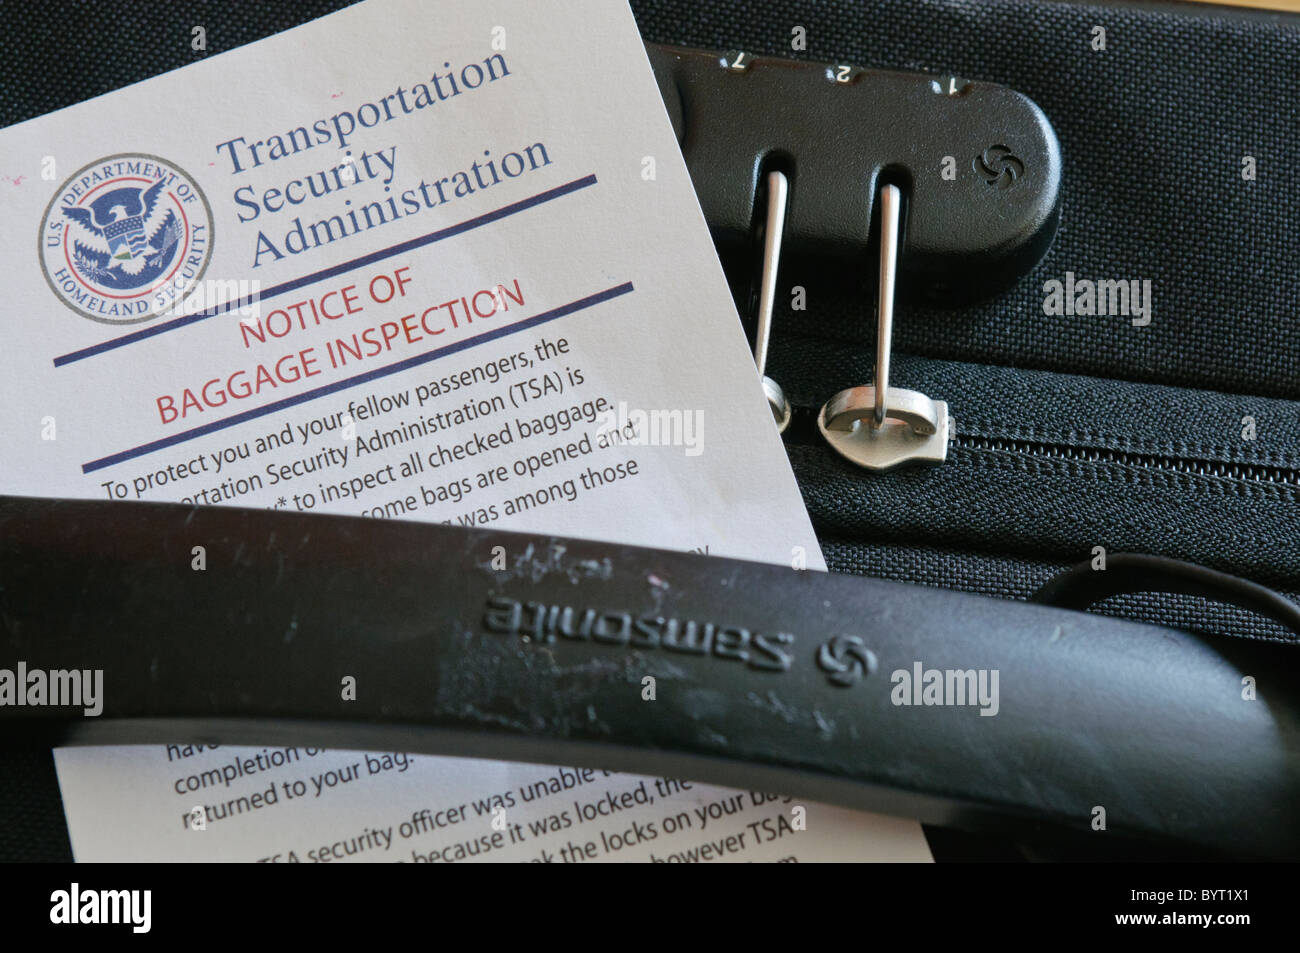 TSA Notice of Baggage Inspection on a suitcase - Stock Image